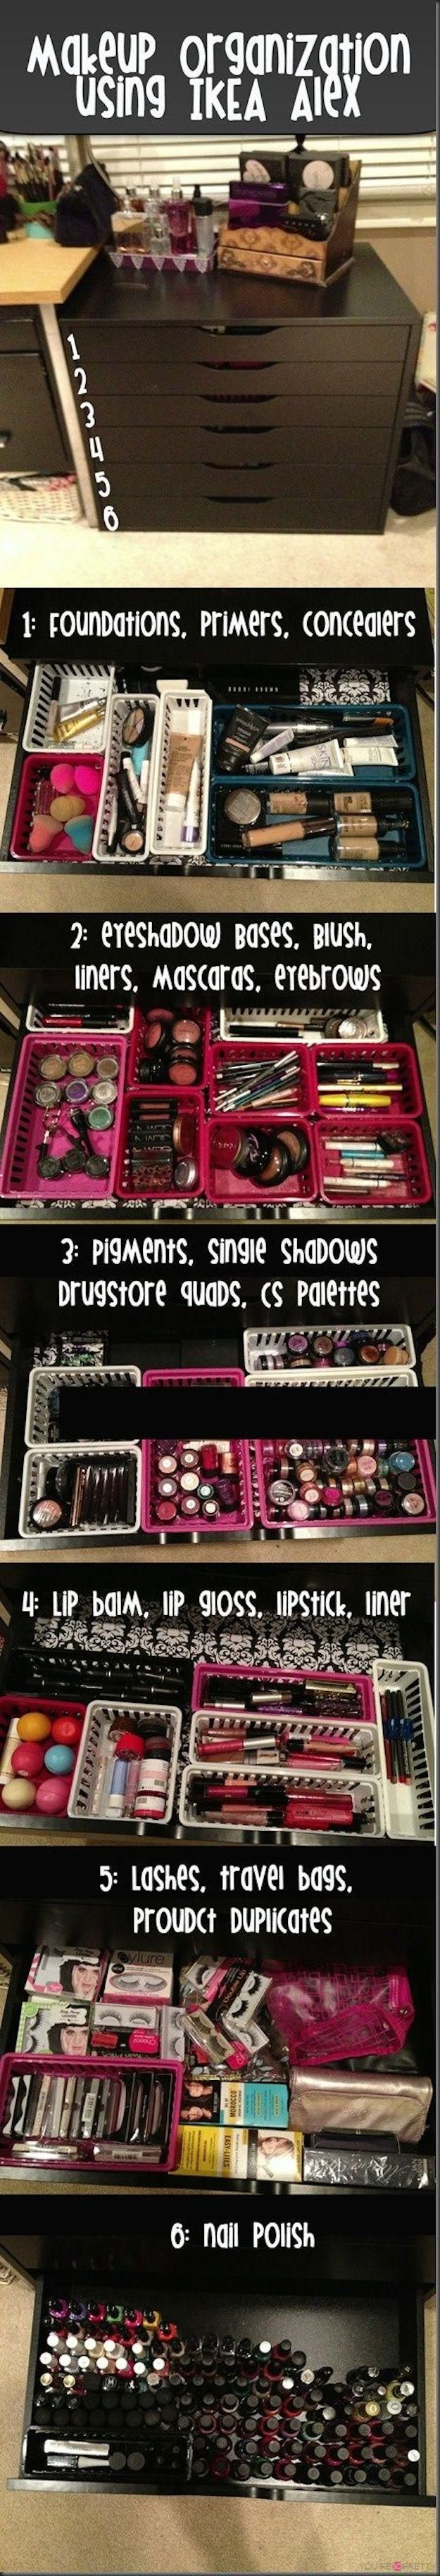 Makeup Storage Ideas | Best makeup brush sets, makeup brush holder, and makeup brush organizers at You're So Pretty. #youresopretty | youresopretty.com